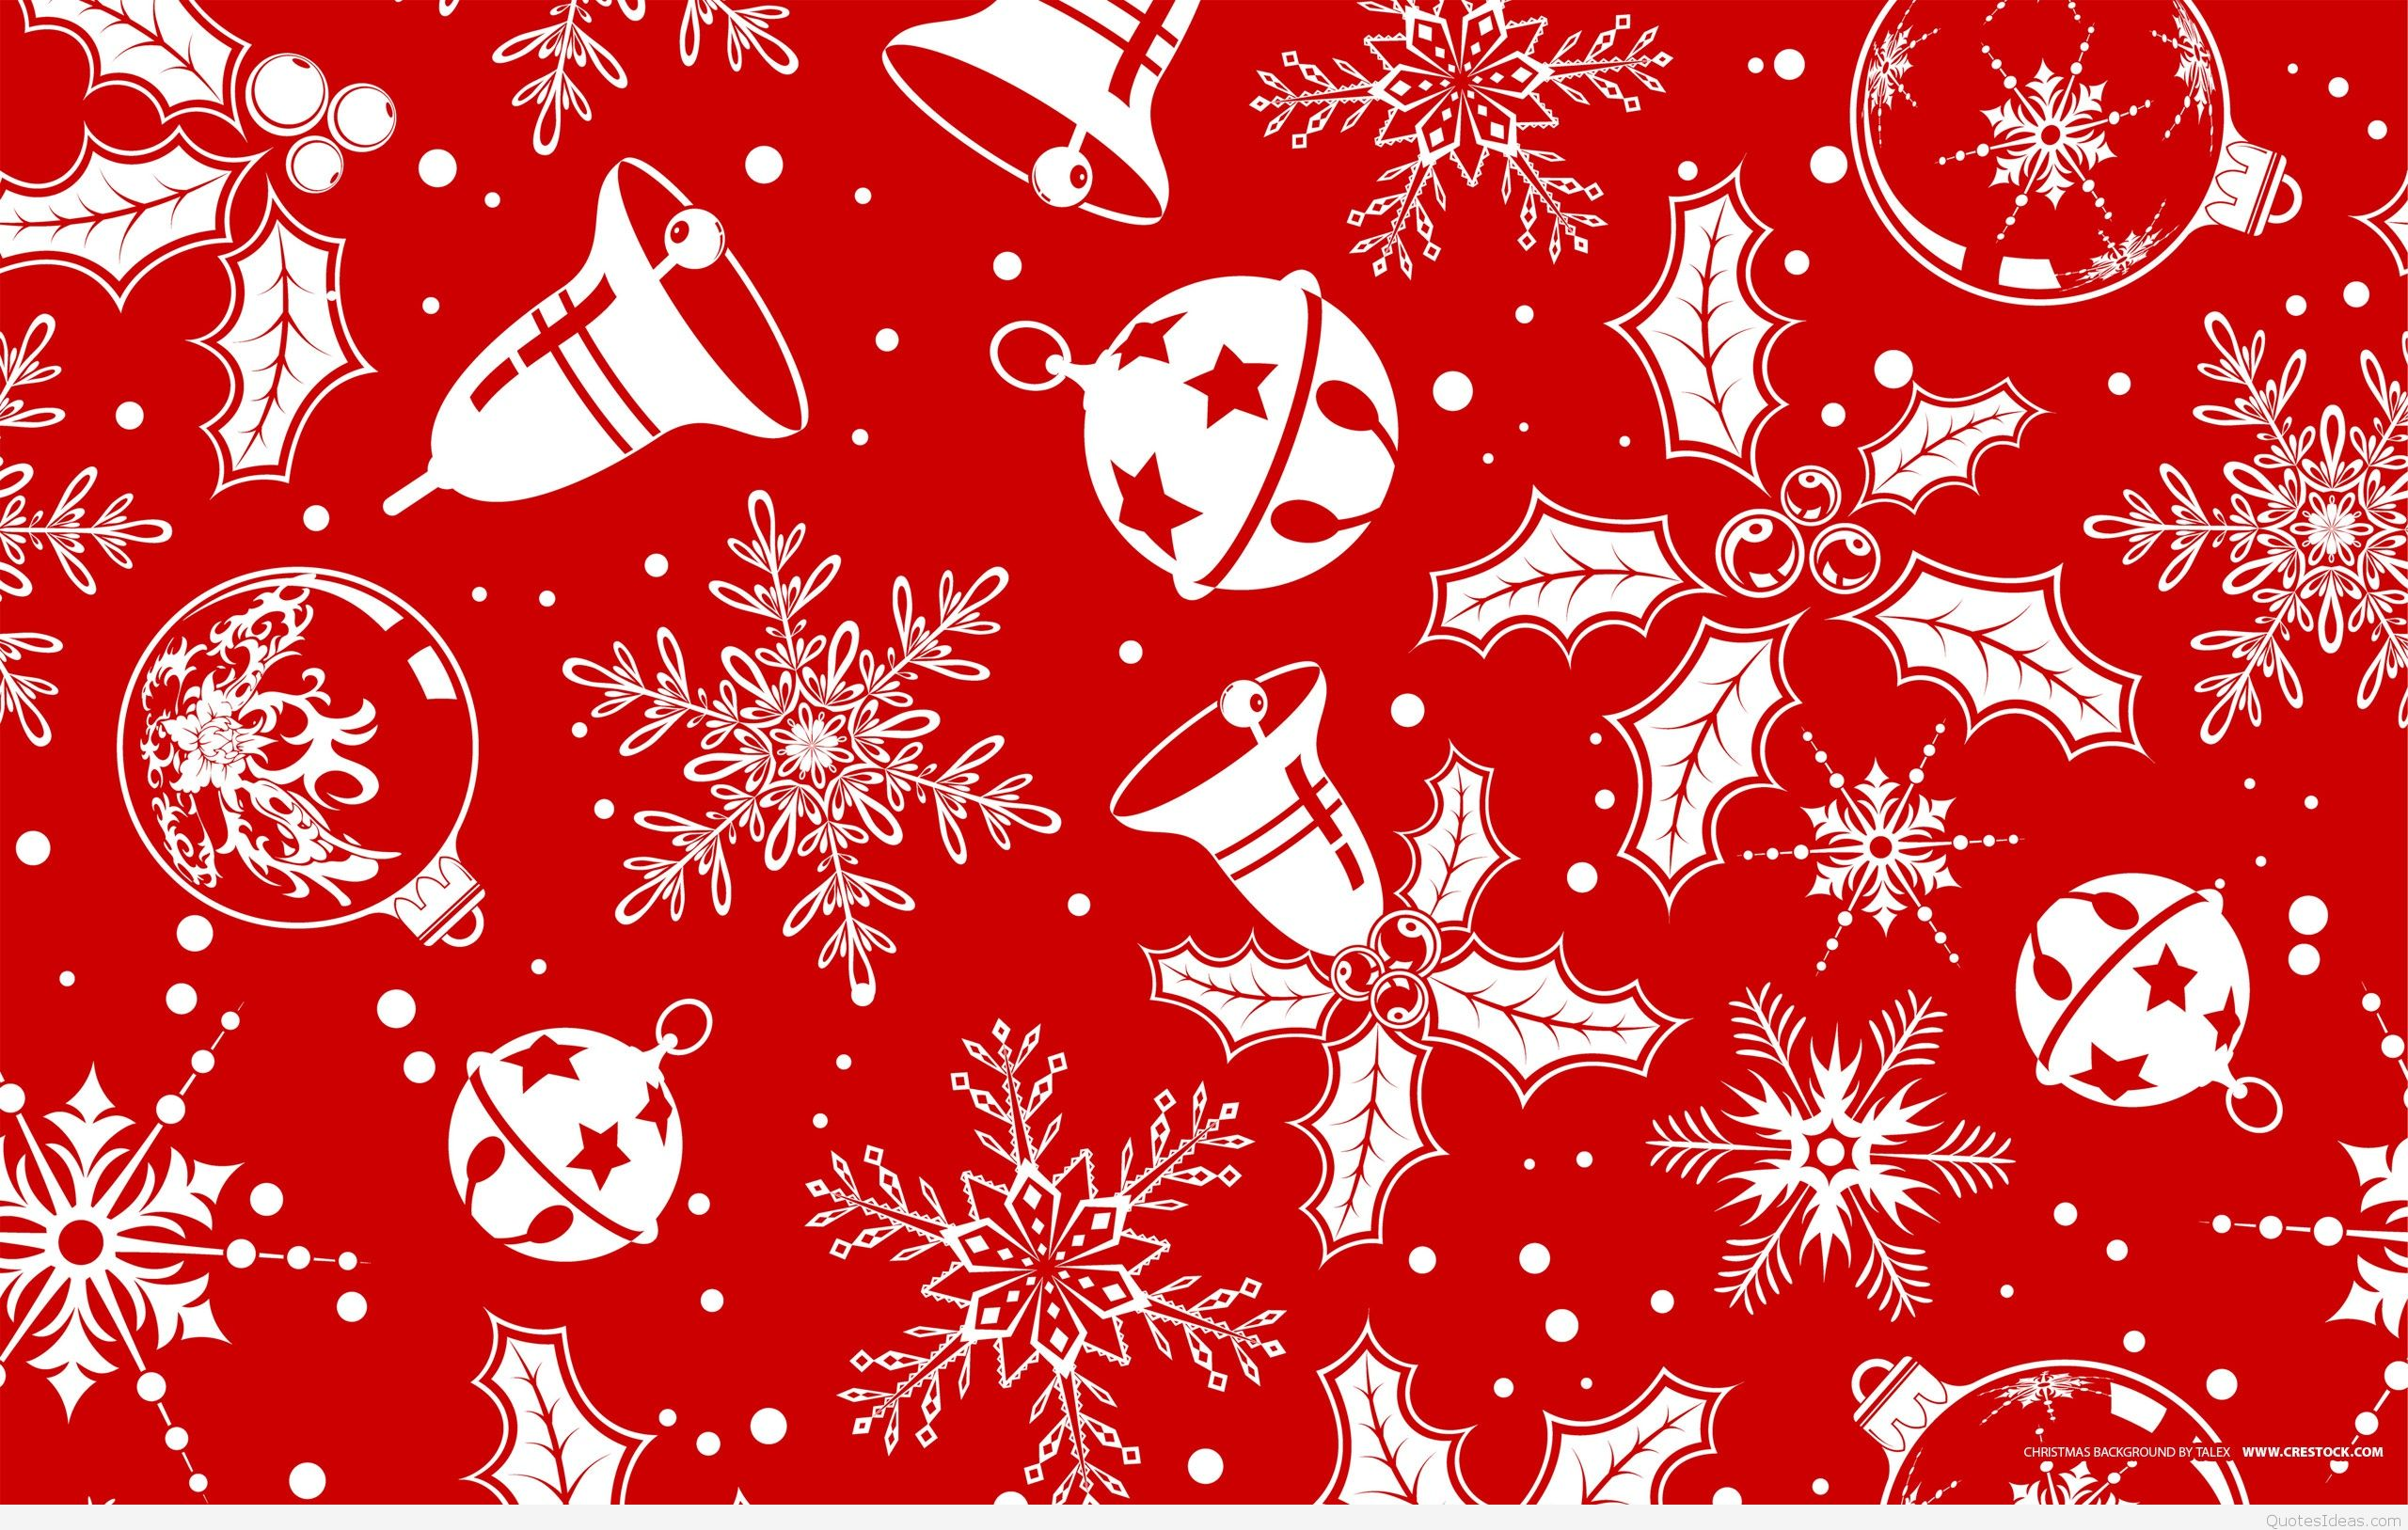 60 Christmas Wallpaper Backgrounds On Wallpapersafari